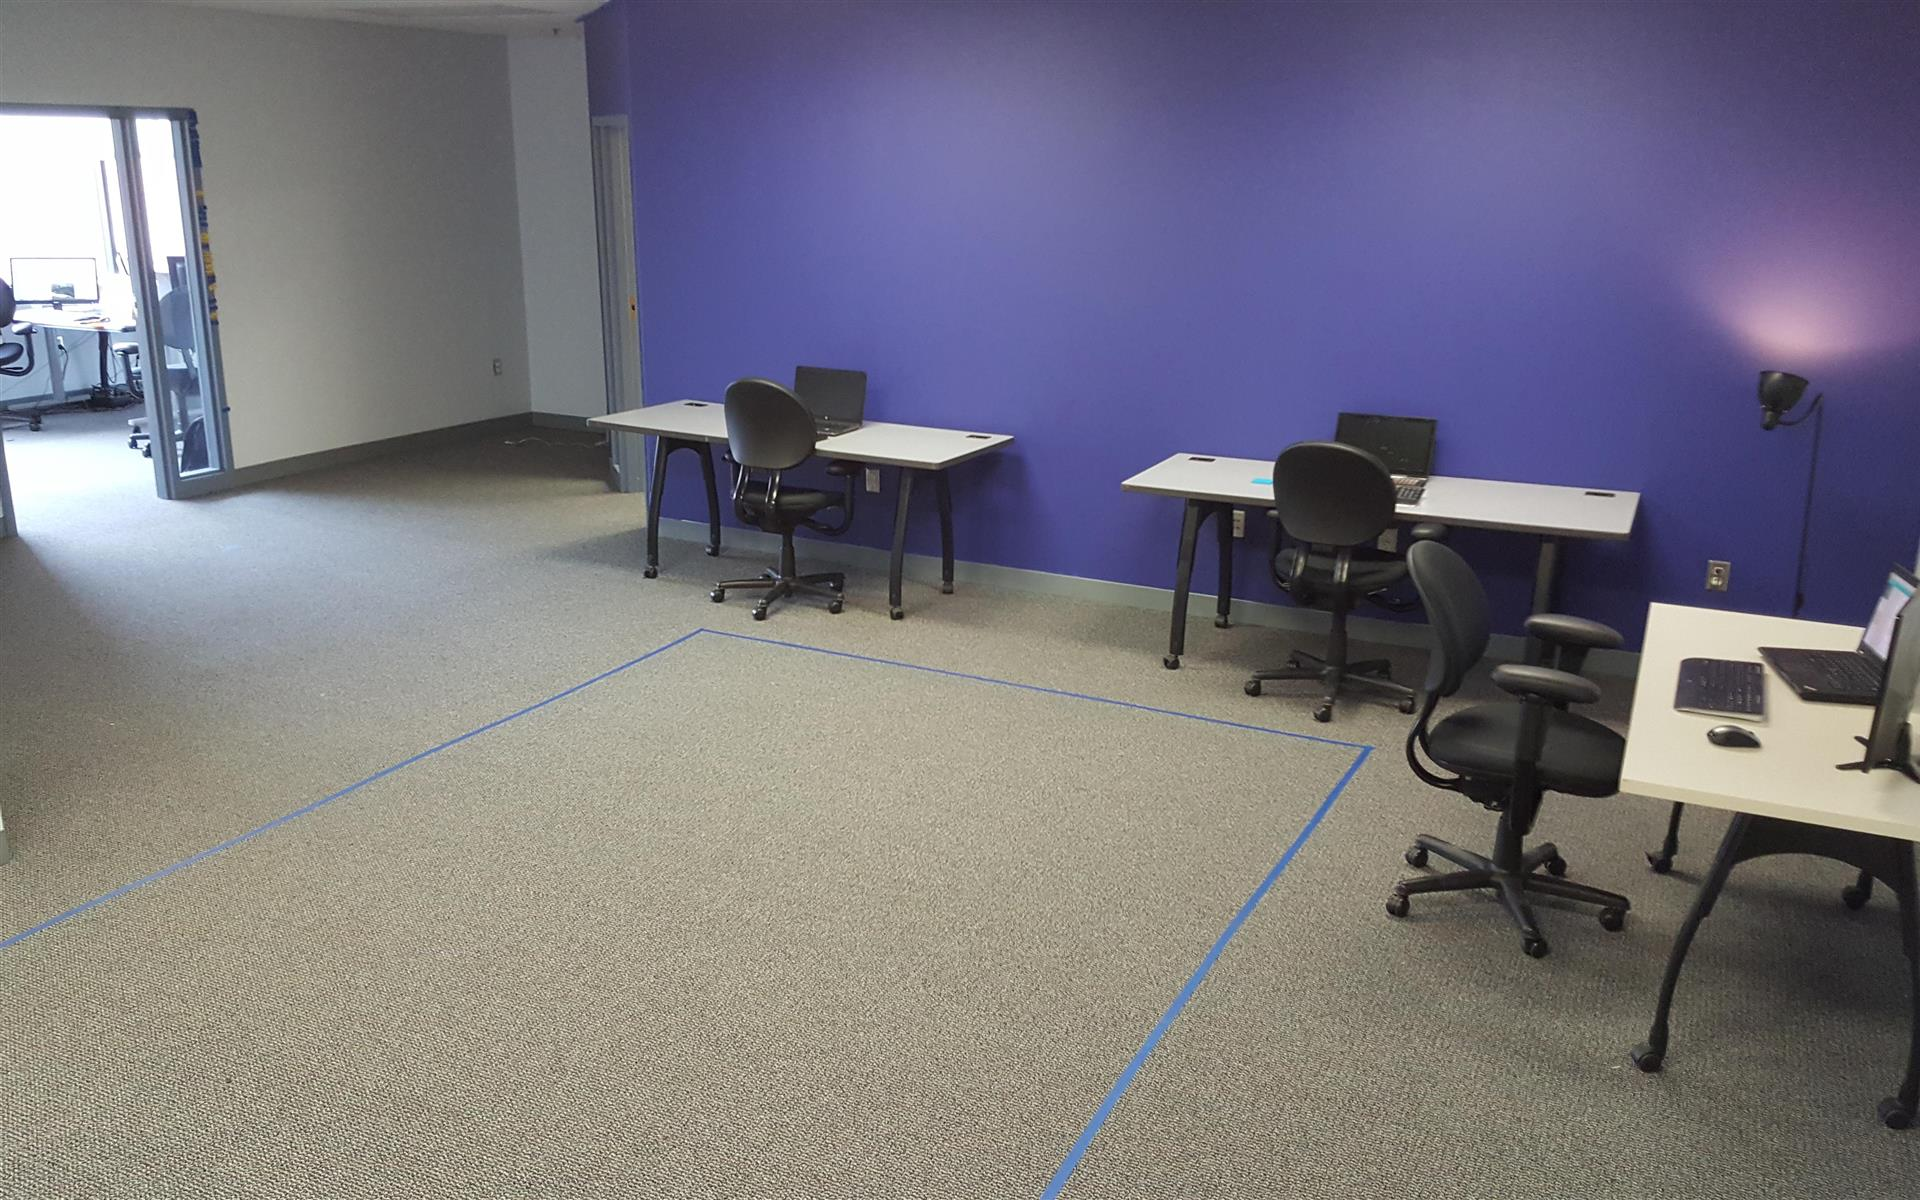 3D Data Ltd - Malden - Team Space for Eight